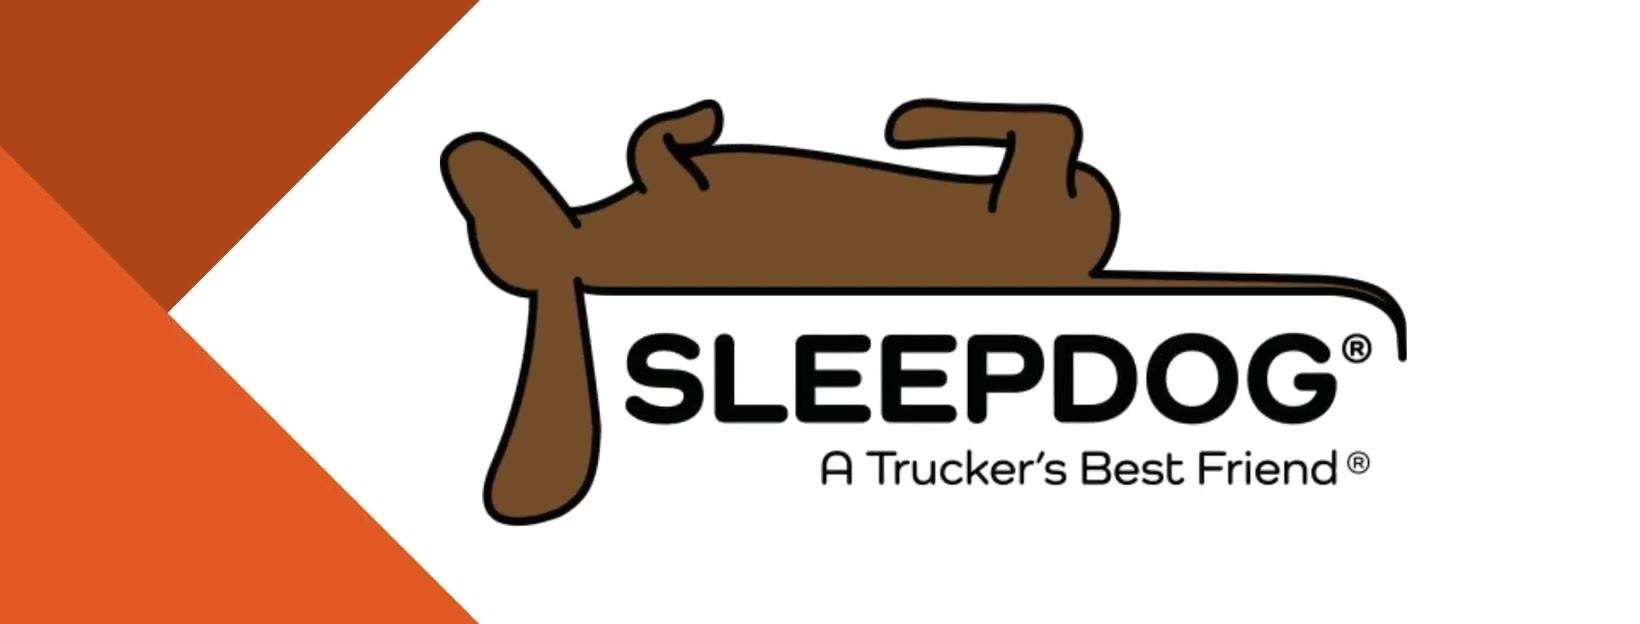 SleepDog Mattress Review